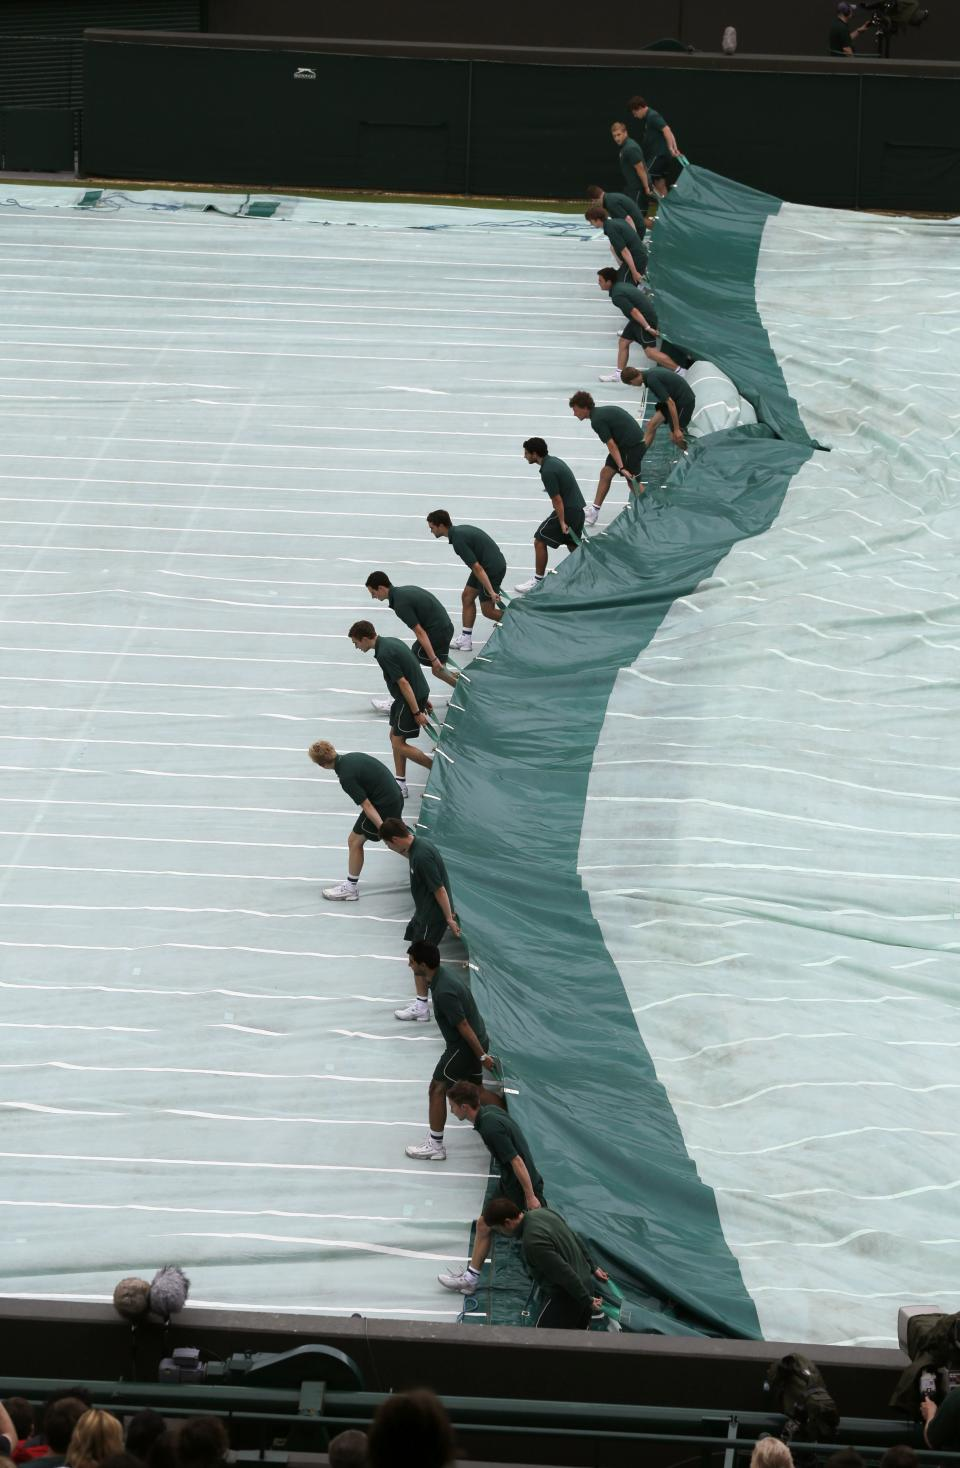 Ground staff pull the covers off following a rain delay to a first round men's singles match between Jo-Wilfried Tsonga of France and Lleyton Hewitt of Australia during a match at the All England Lawn Tennis Championships at Wimbledon, England, Tuesday, June 26, 2012. (AP Photo/Tim Hales)